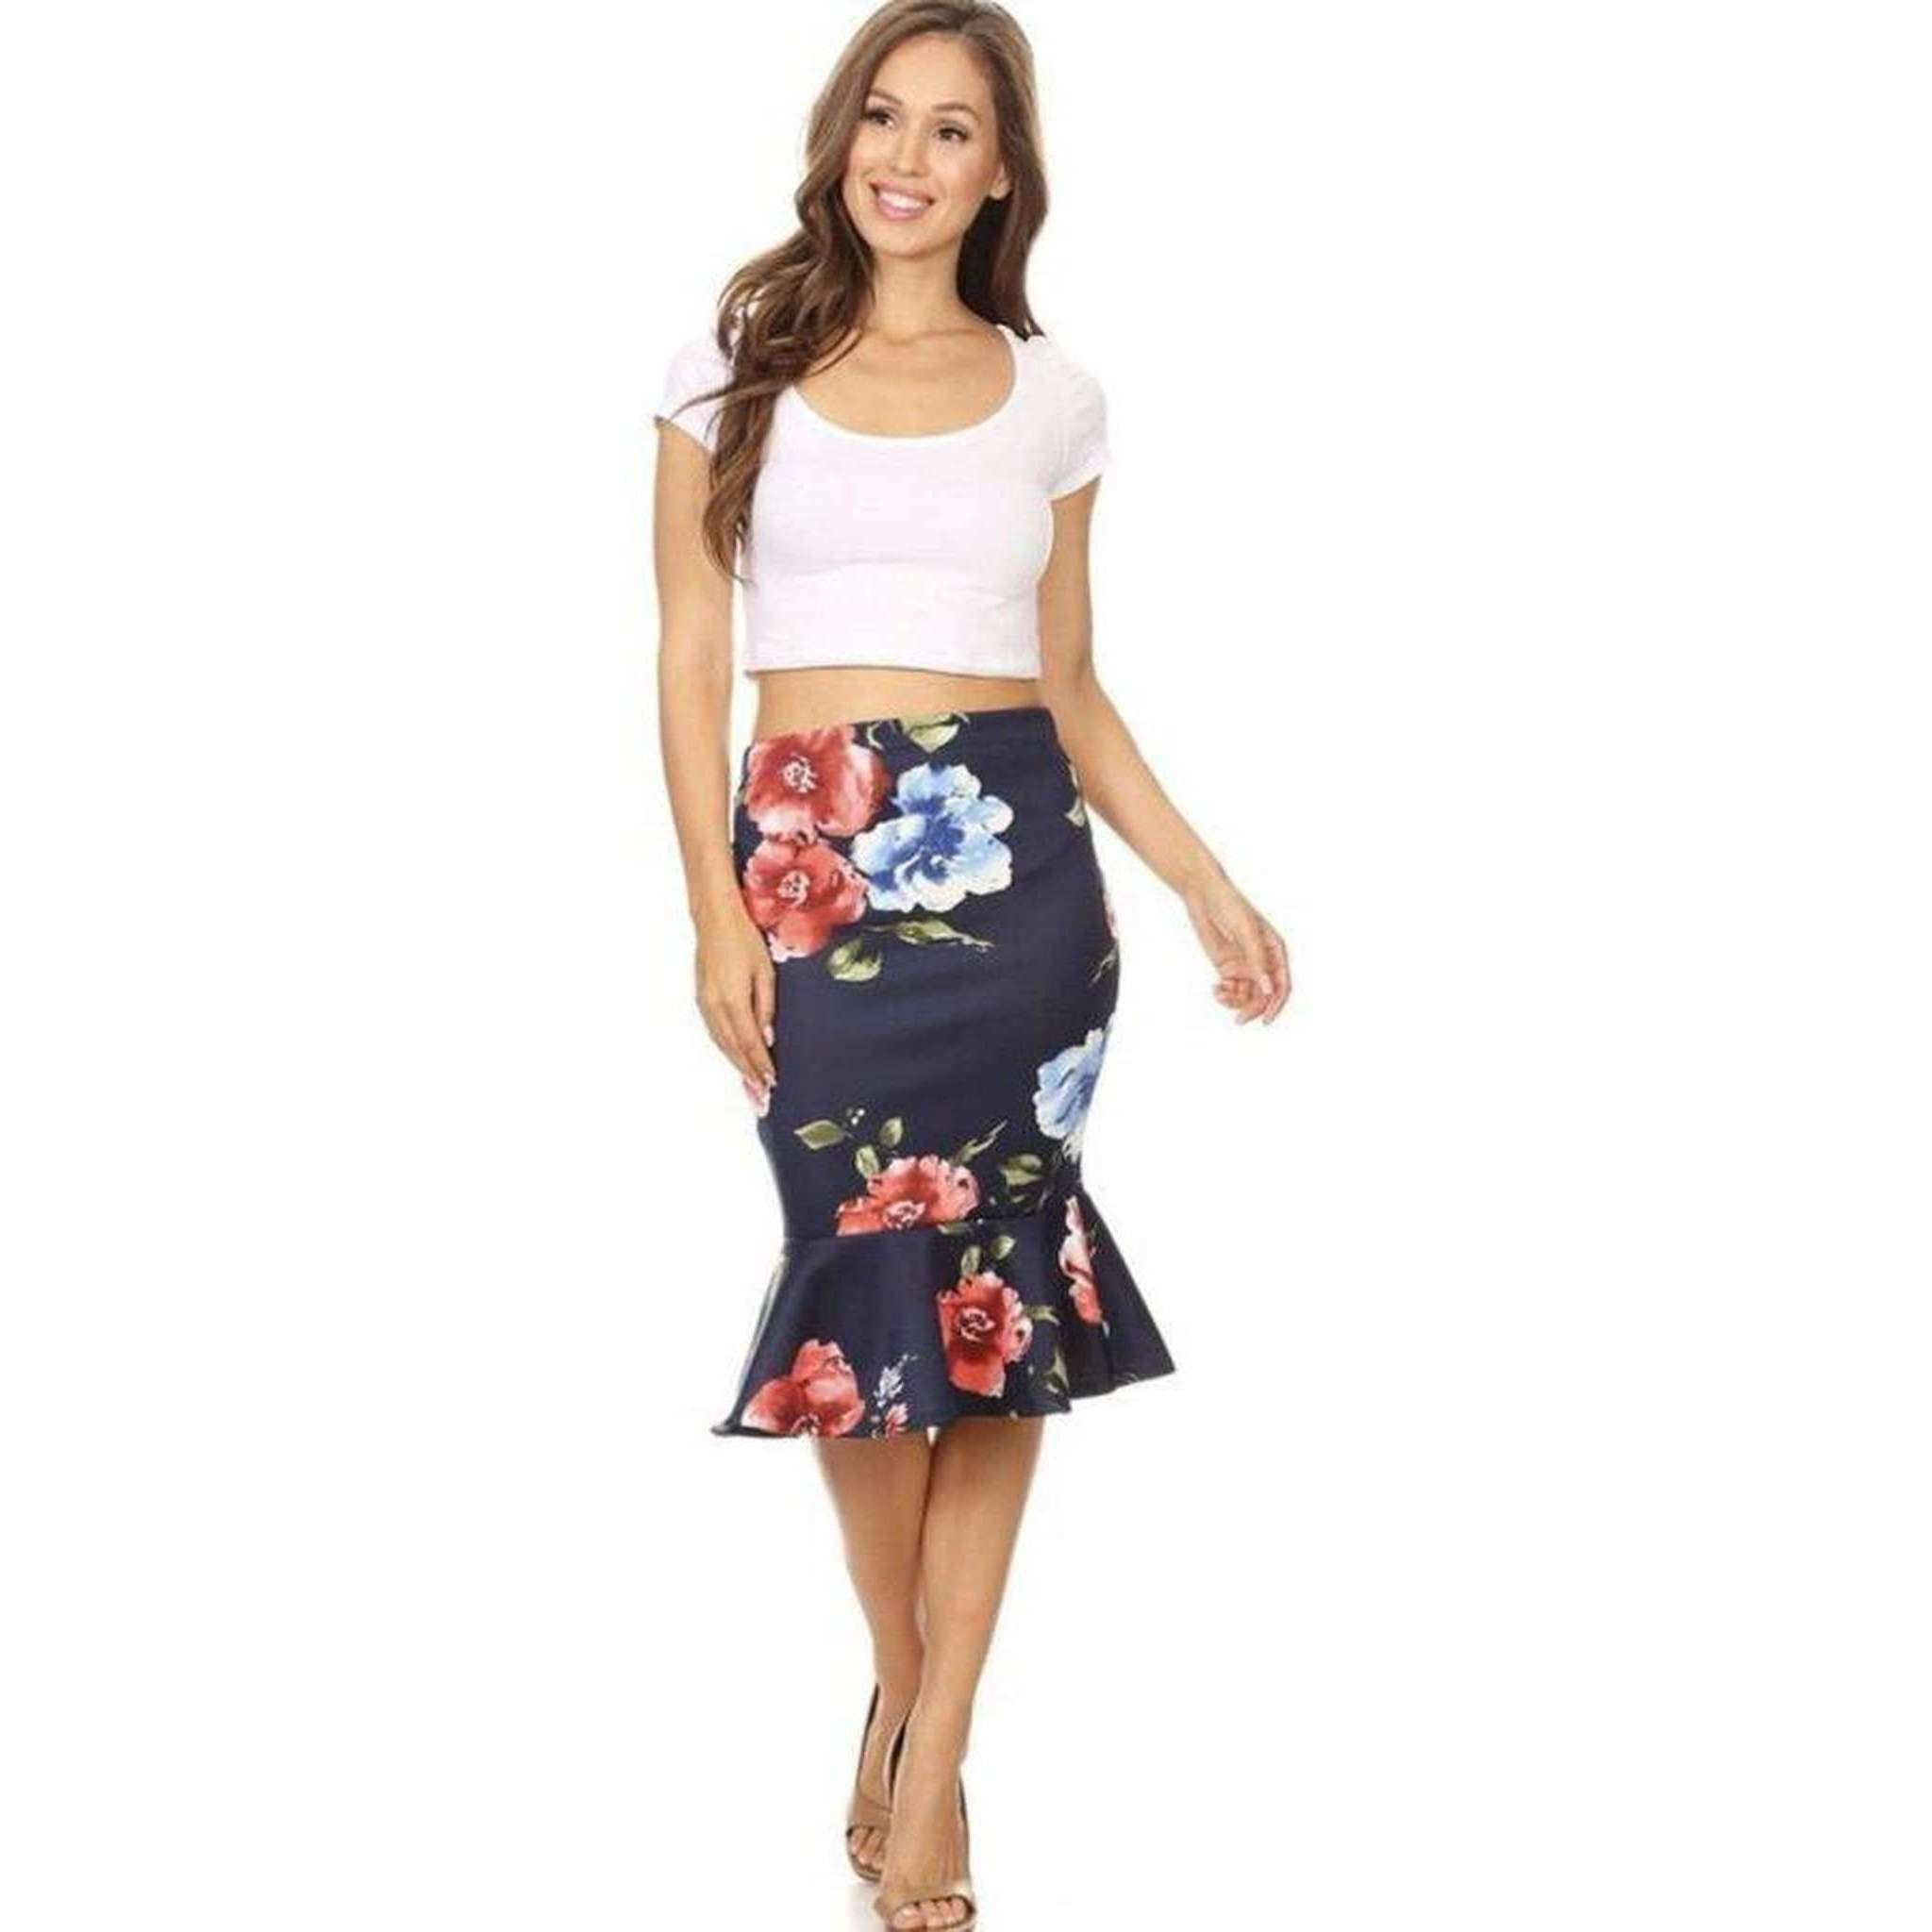 Womens Clothing Mermaid Style Skirt in Navy with Red Floral Print